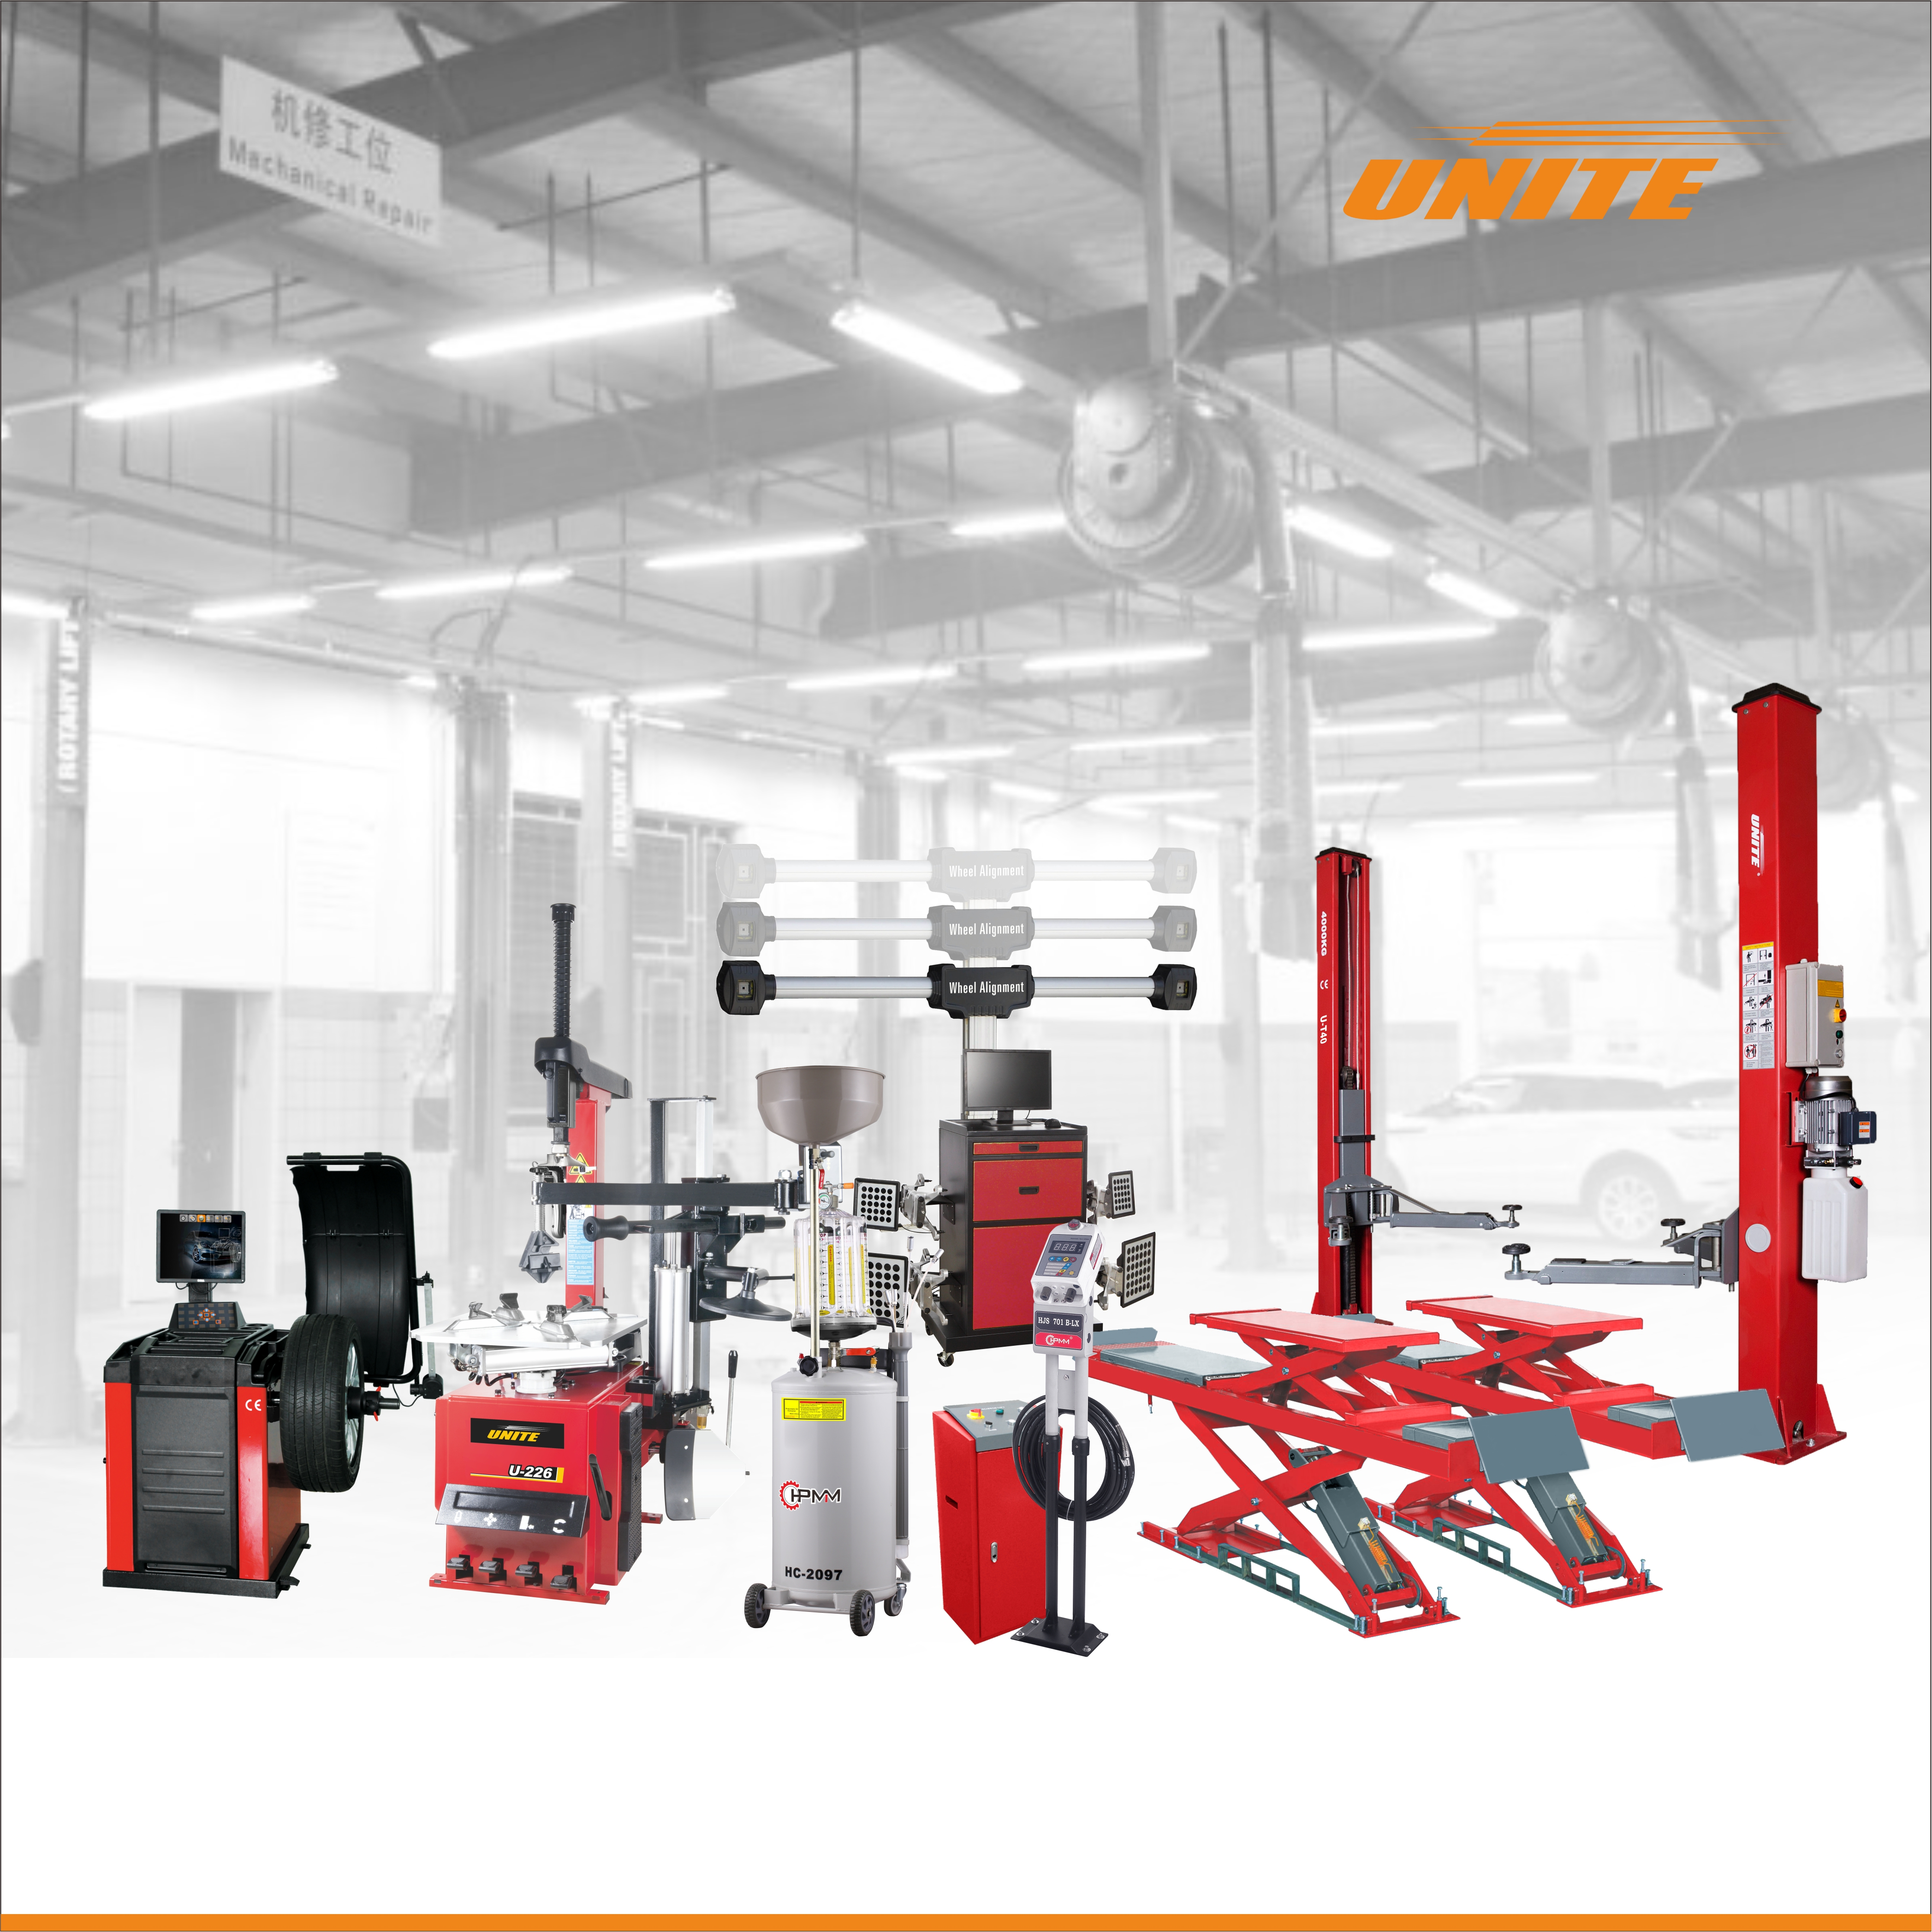 Opening a Tire Service Shop? Get These Tools and Equipment Package for Your Garage Shop